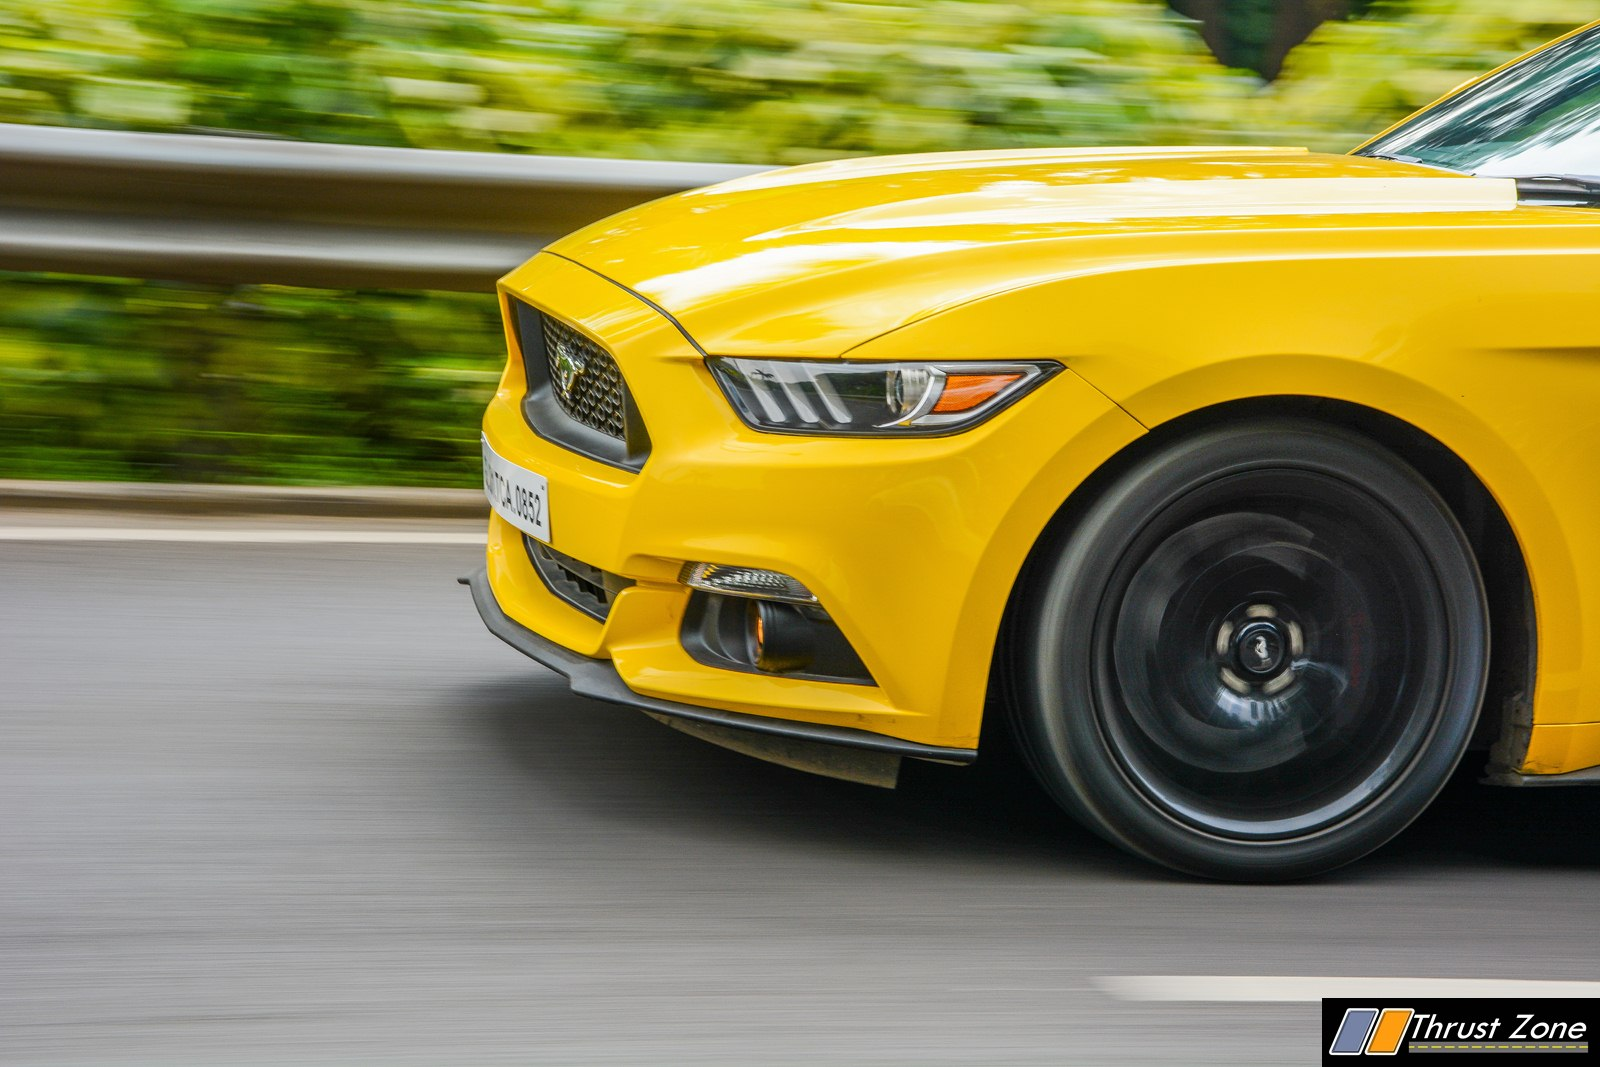 https://www.thrustzone.com/wp-content/uploads/2018/09/Ford-Mustang-India-V8-Review-14.jpg